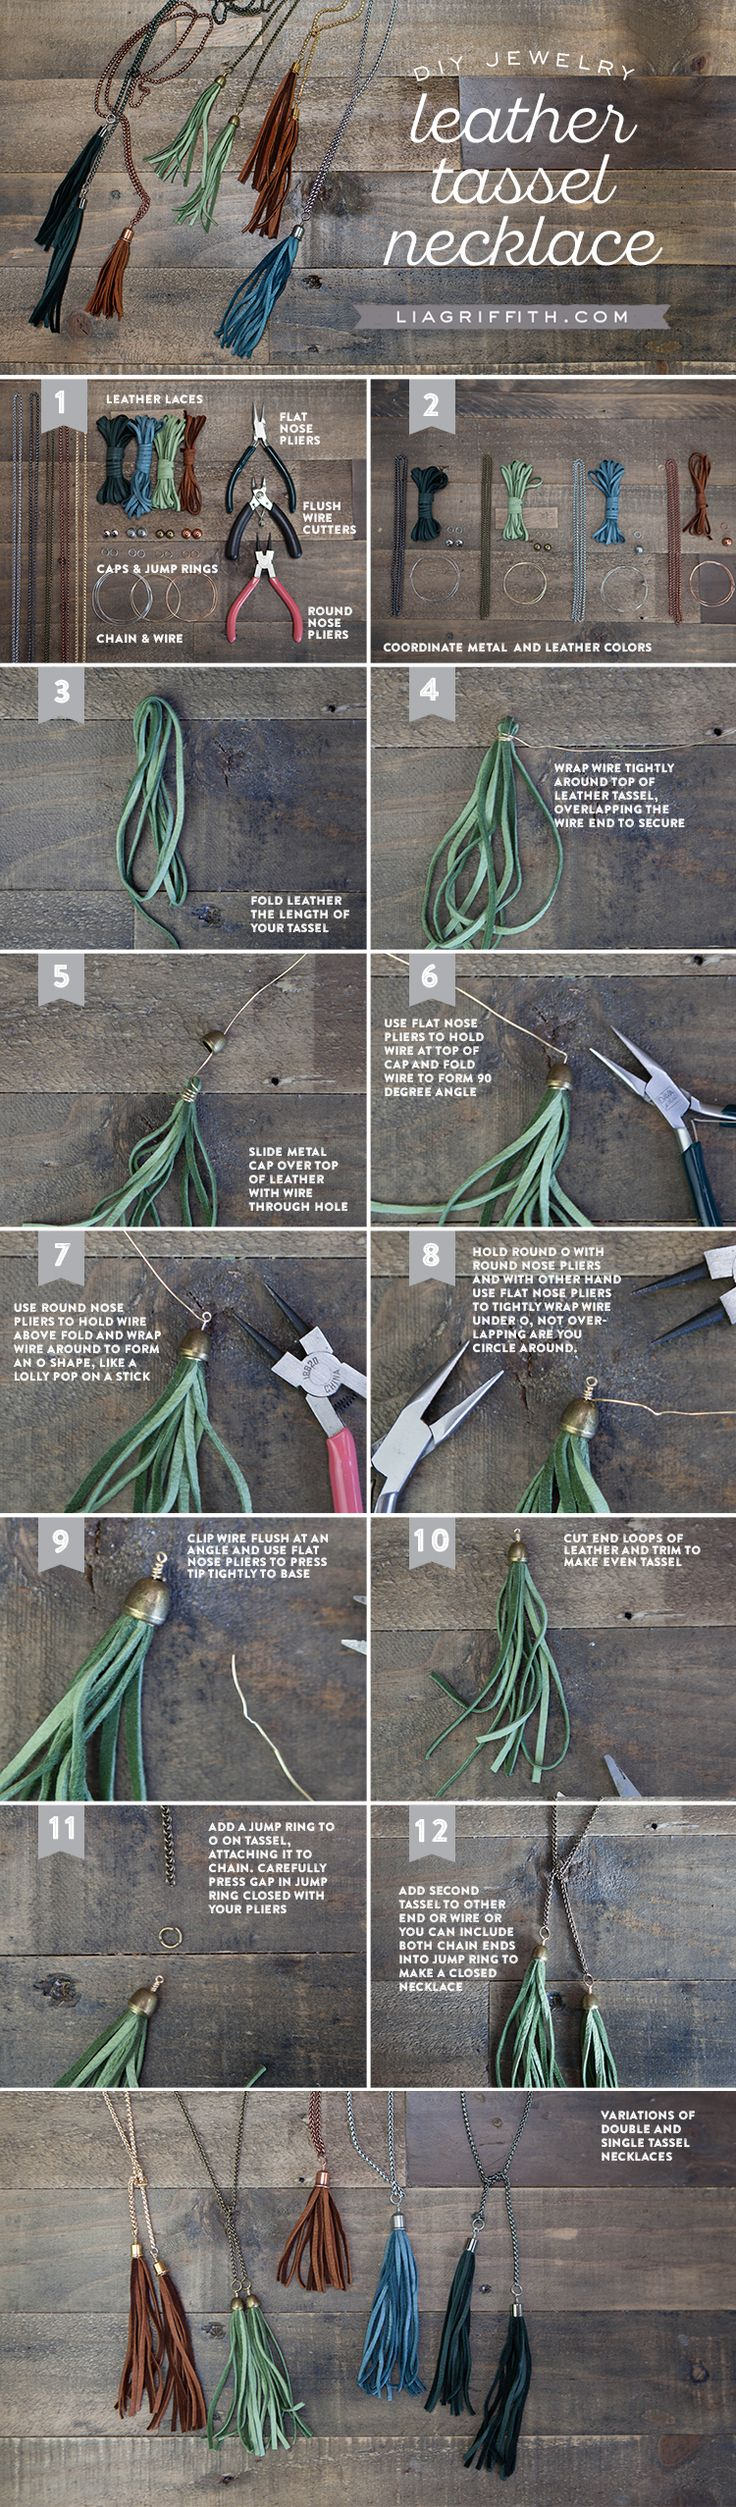 Make your own cute leather DIY tassel necklaces with this jewelry tutorial from handcrafted lifestyle expert Lia Griffith.